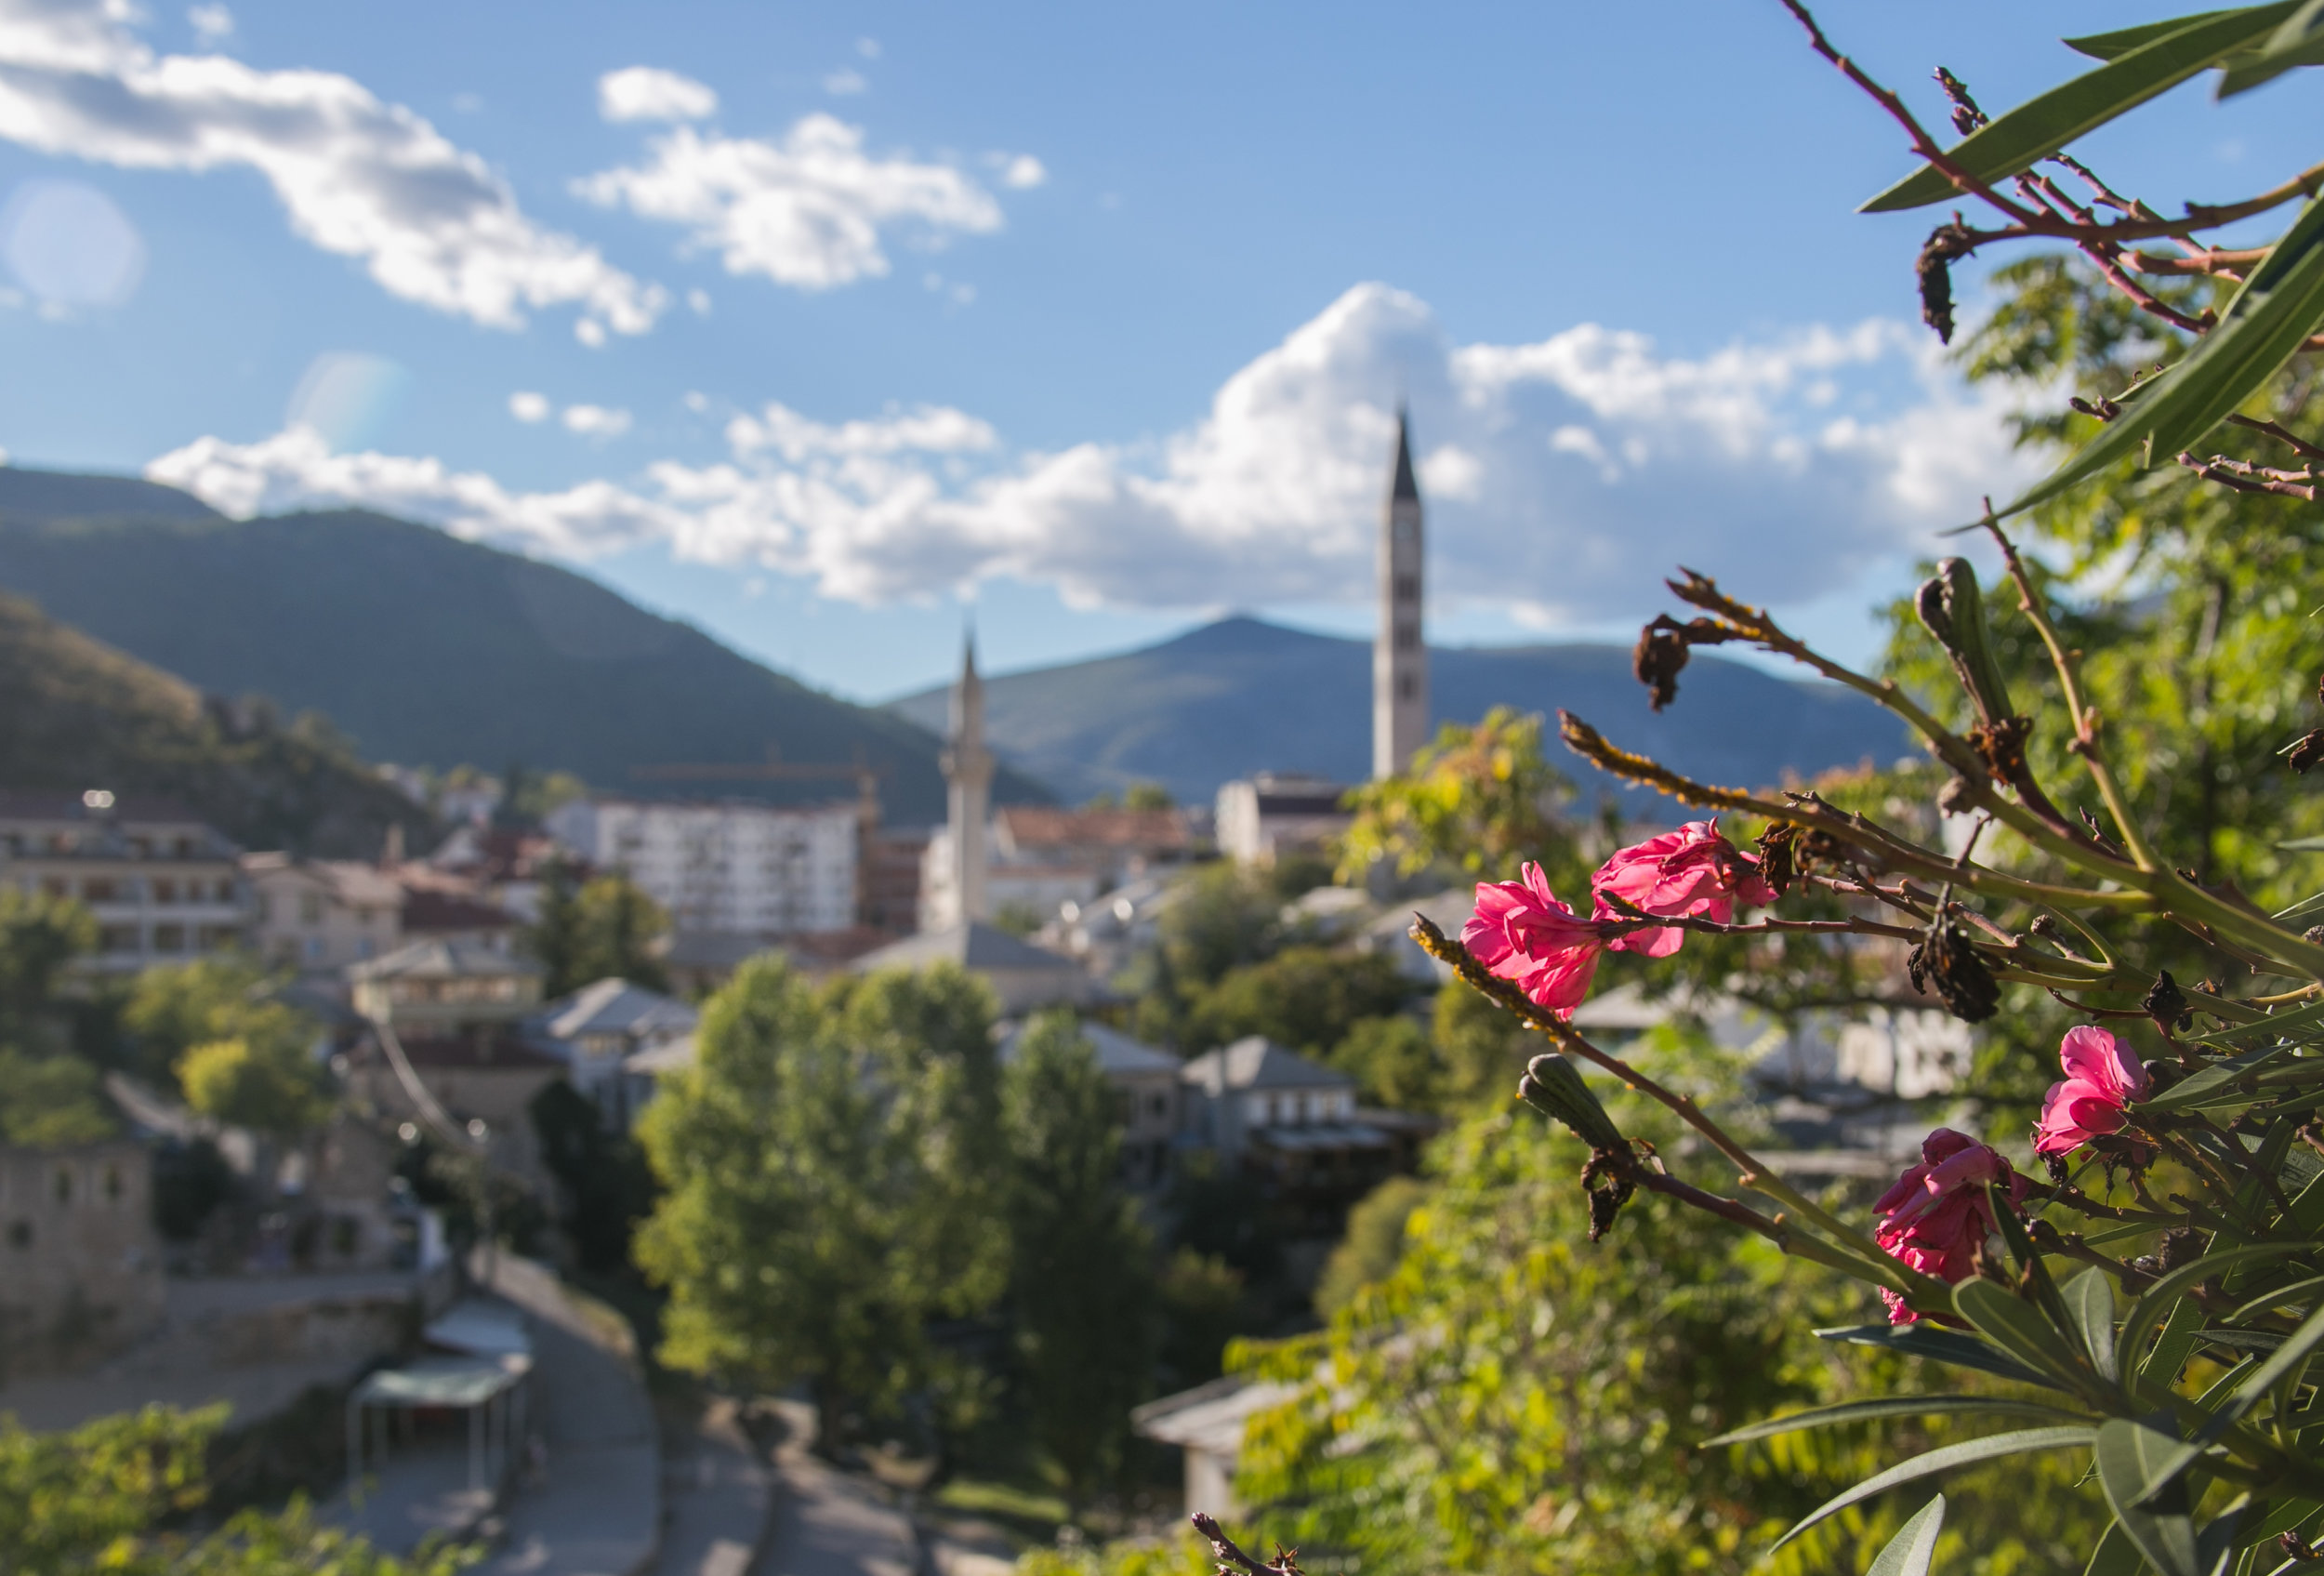 A view of Mostar from one of the public parks along the river.